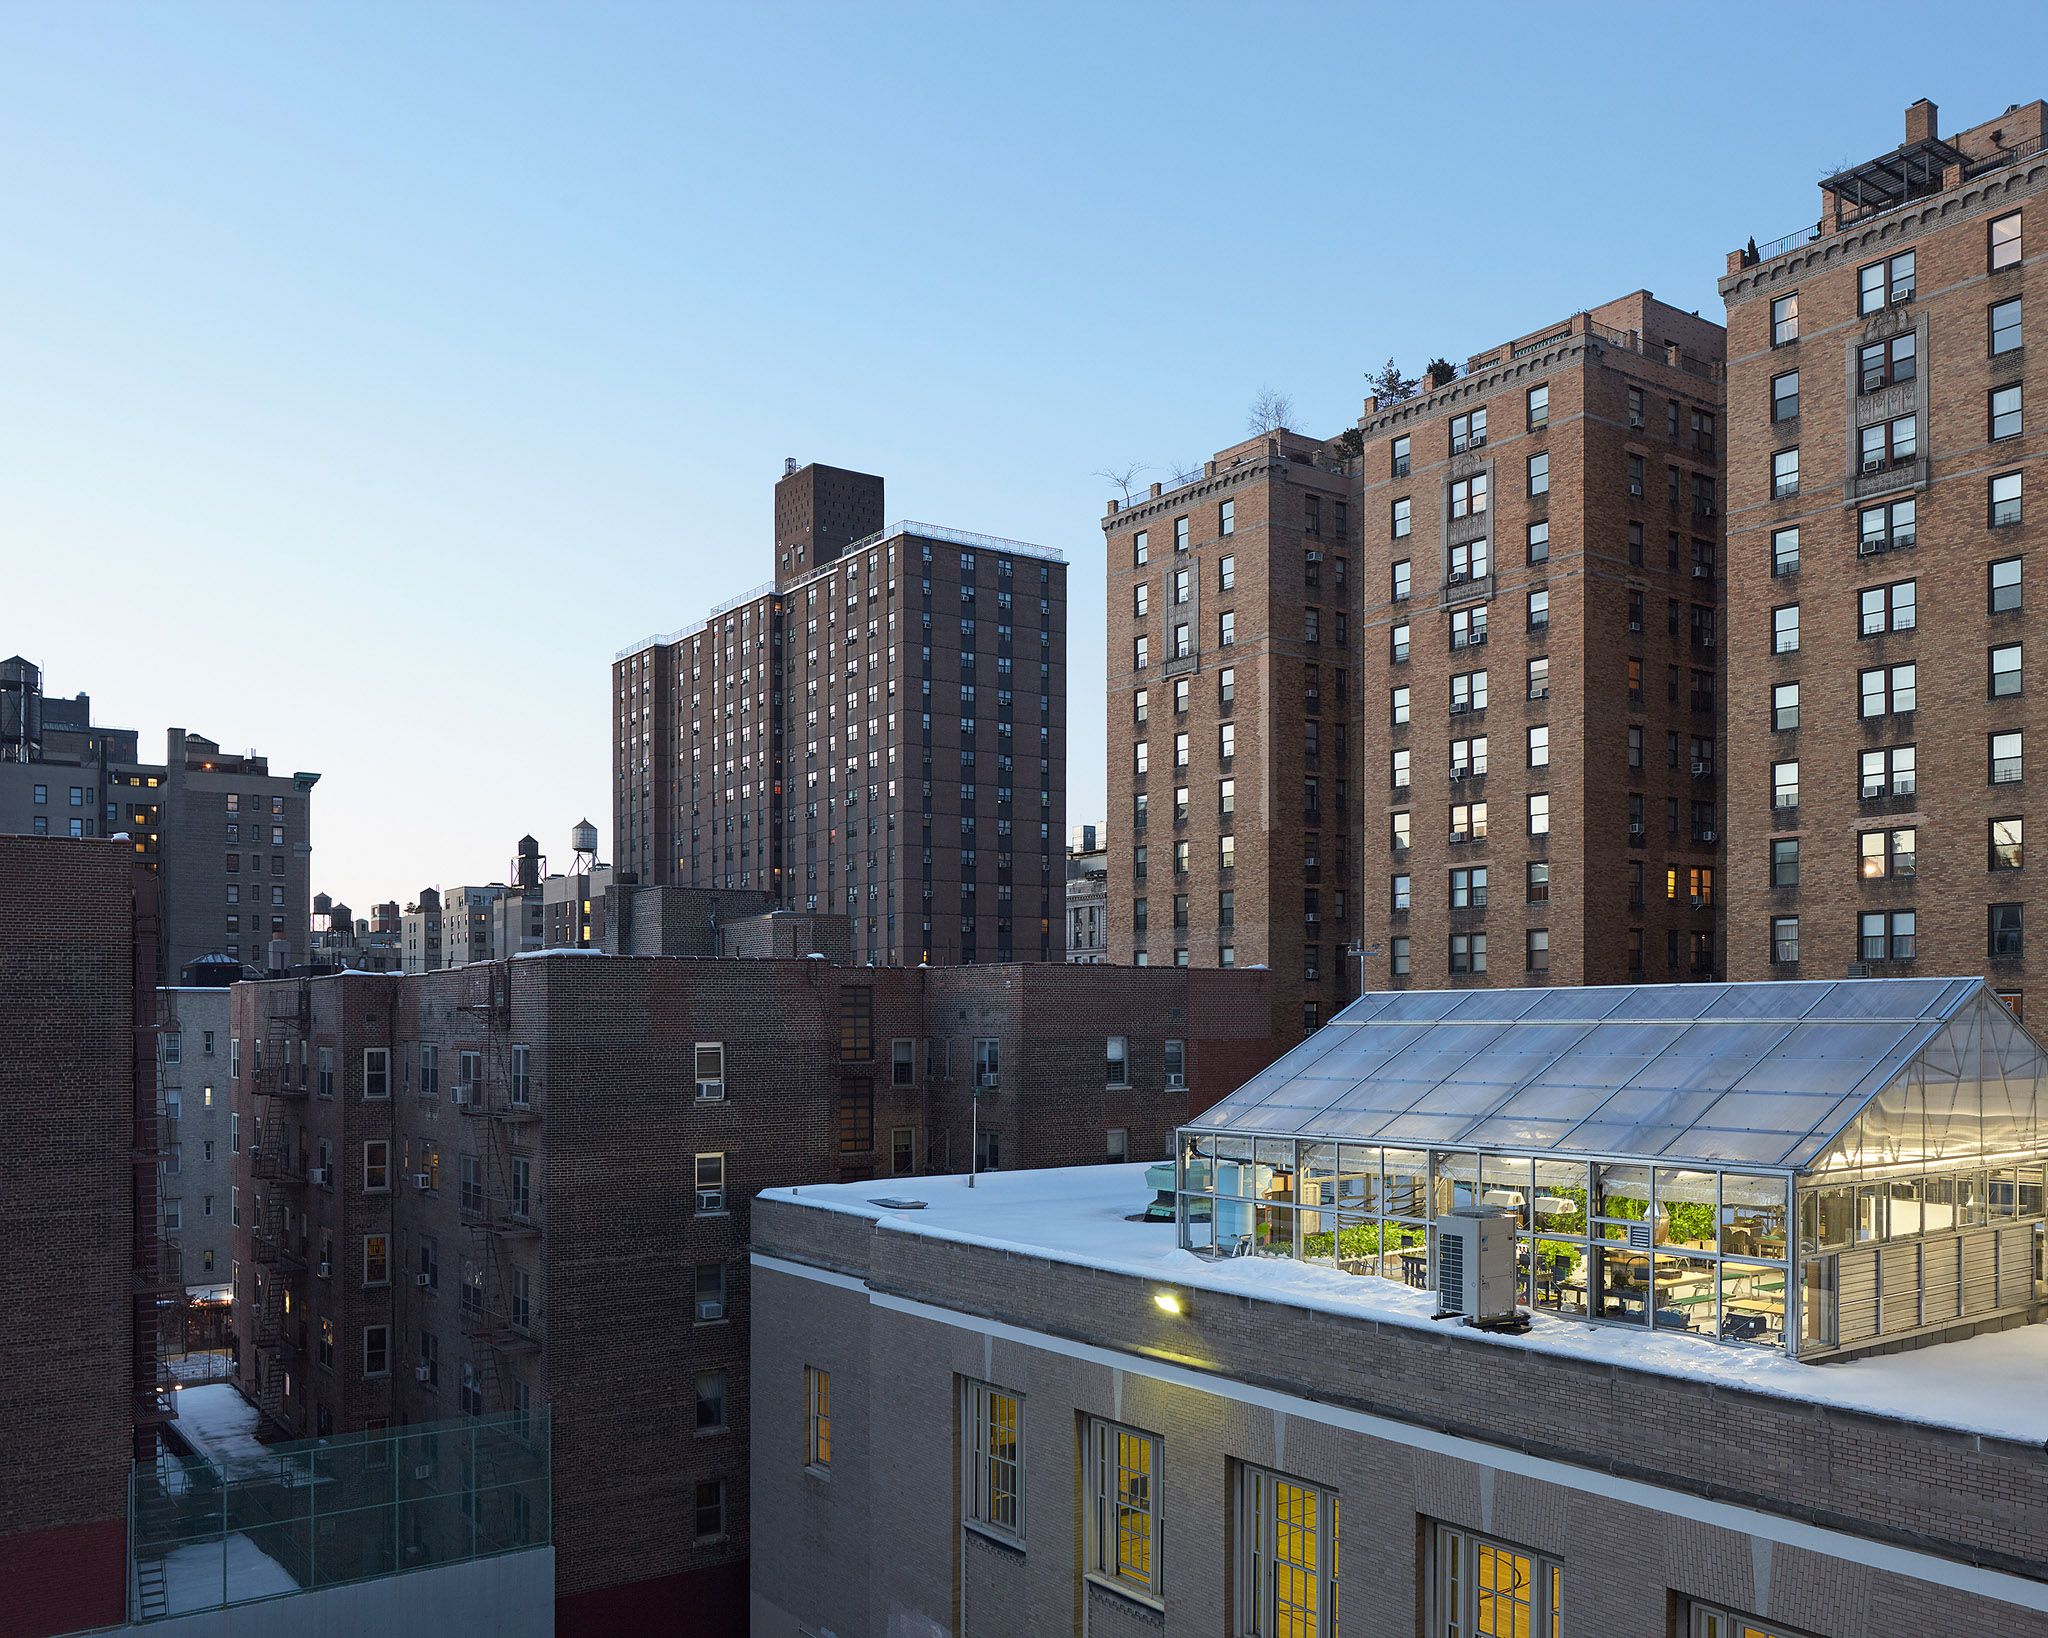 PS333 Green Roof, Location: New York City